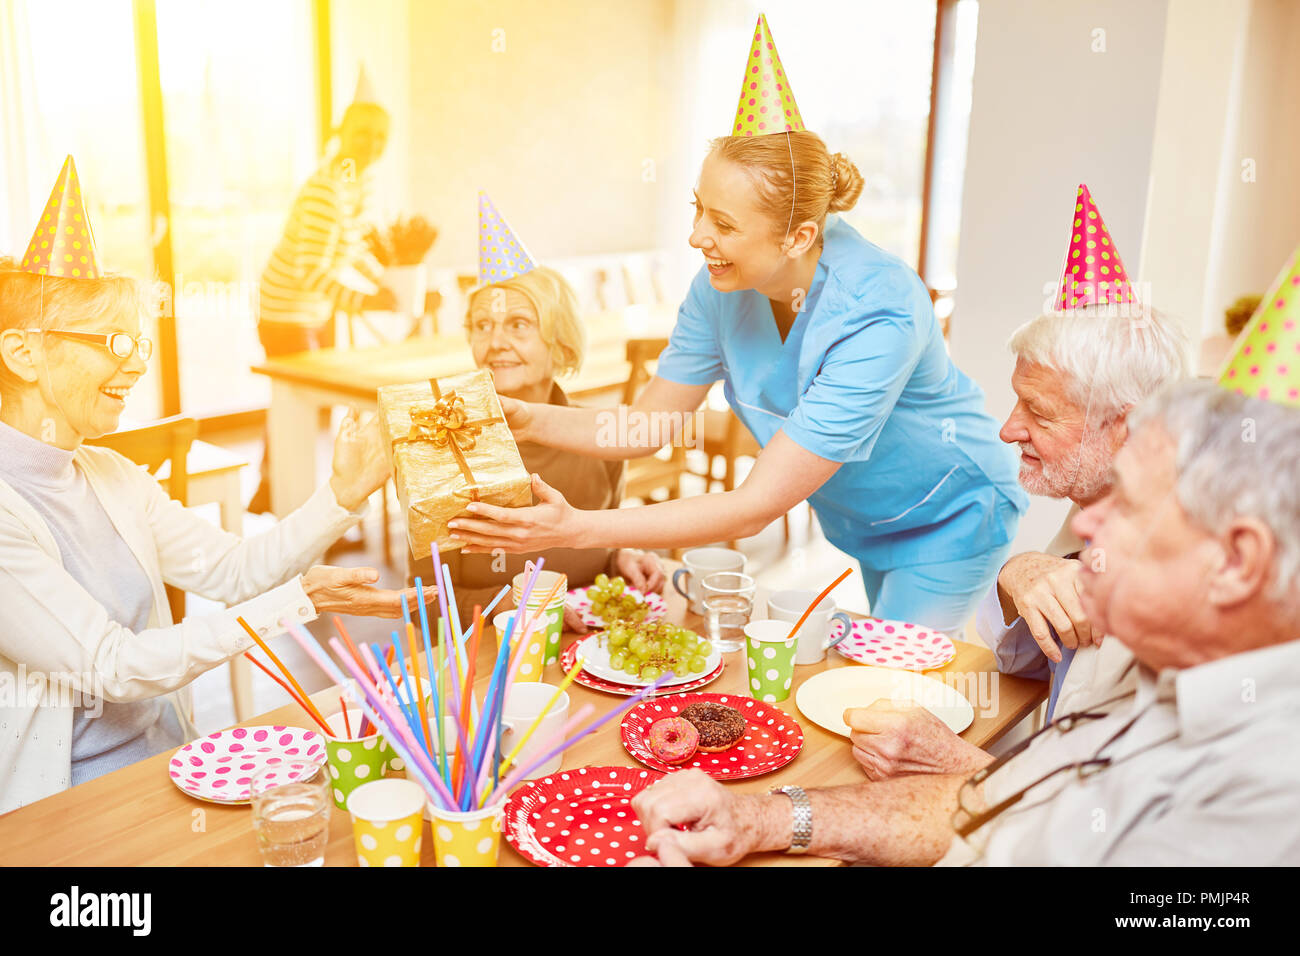 Seniors celebrate birthday together in the retirement home with cake and gift - Stock Image